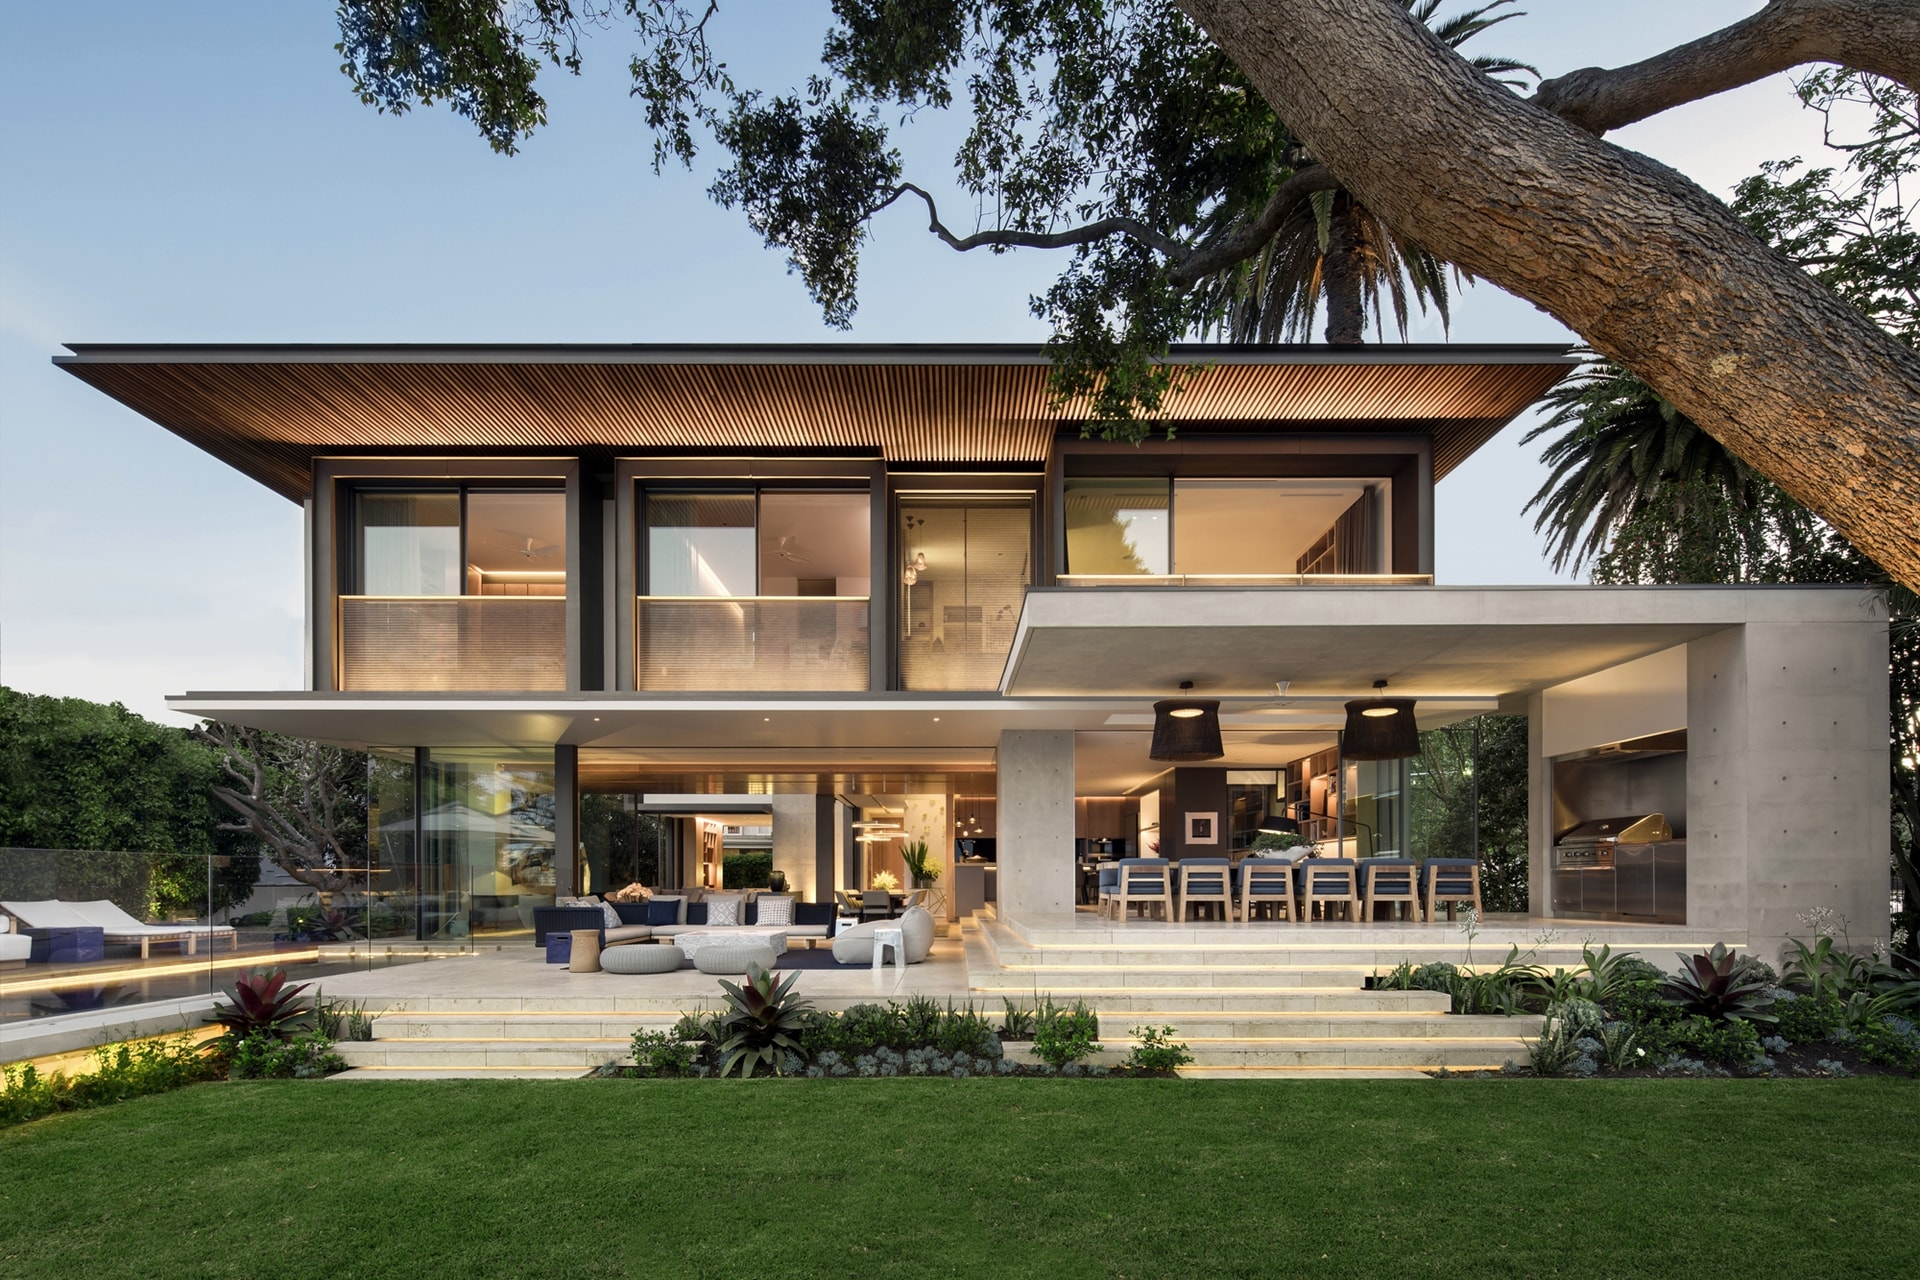 Amazing house design with 10+ ideas for inspiration ... on Amazing Modern Houses  id=85424